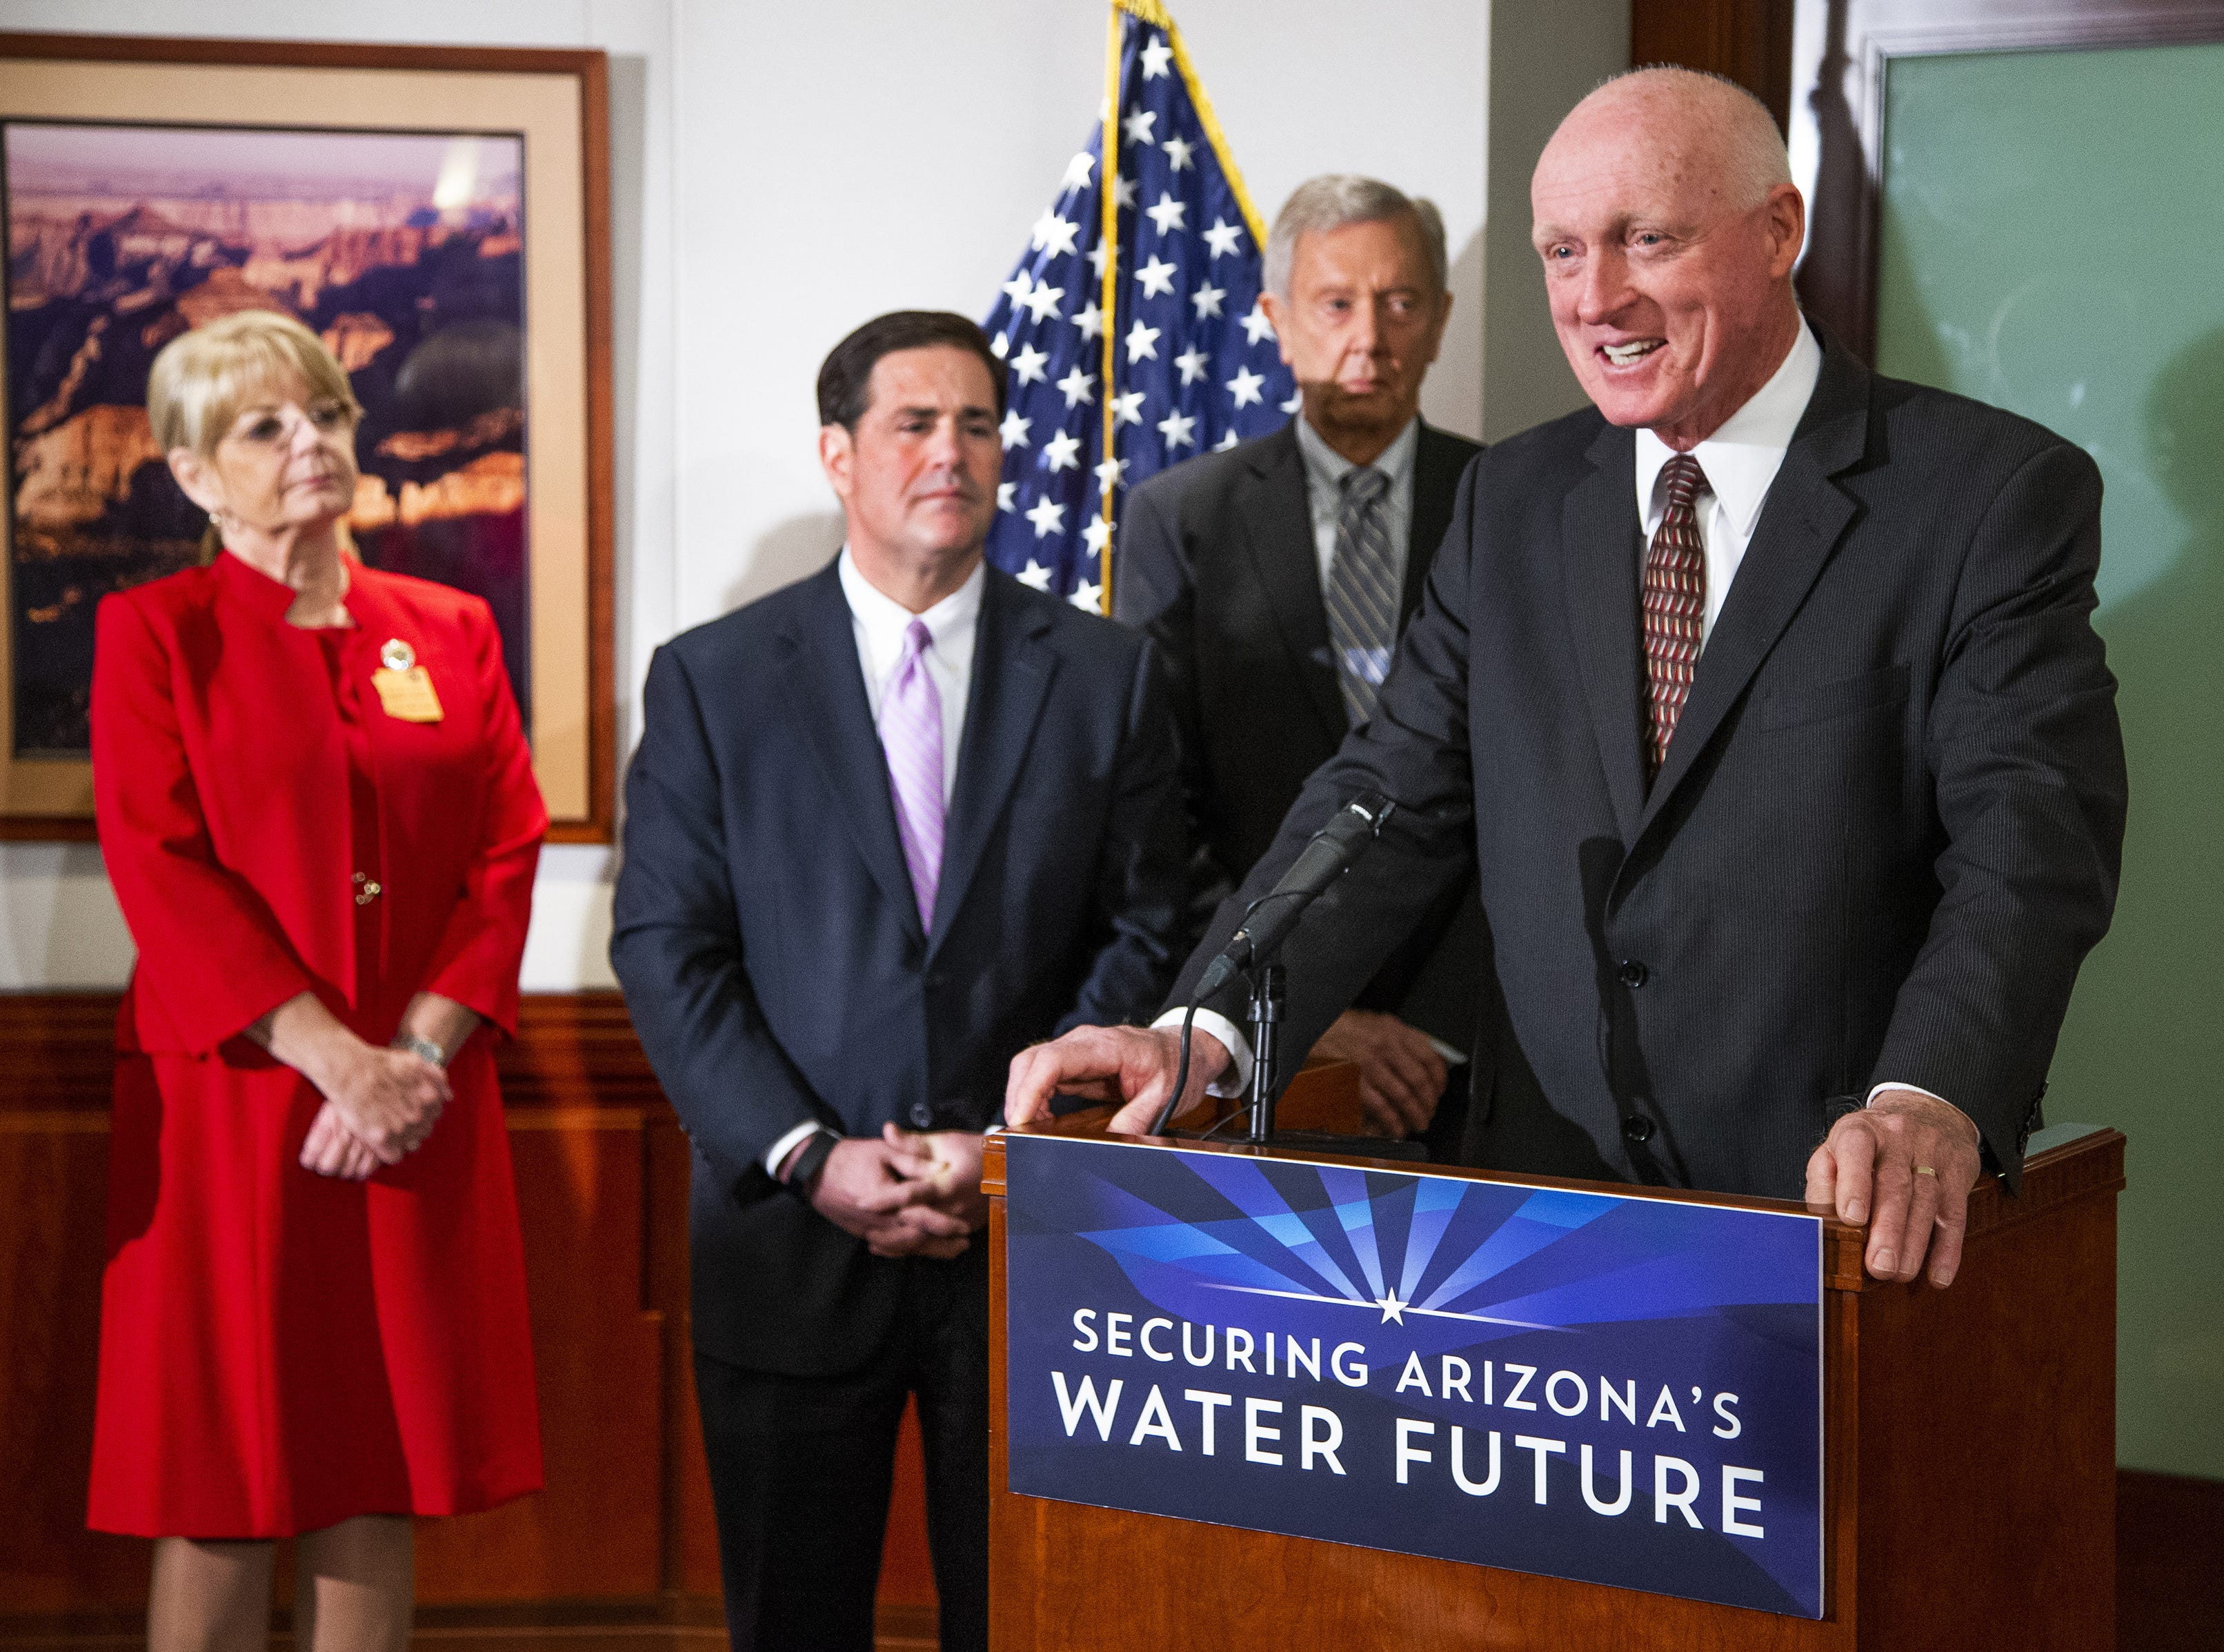 House Speaker Rusty Bowers (right) speaks at a press conference at the Arizona Capitol with government leaders to discuss water use, Jan. 15, 2019. Also in attendance (from left to right) Senate President Karen Fann, Gov. Doug Ducey, and former Gov. Bruce Babbitt.